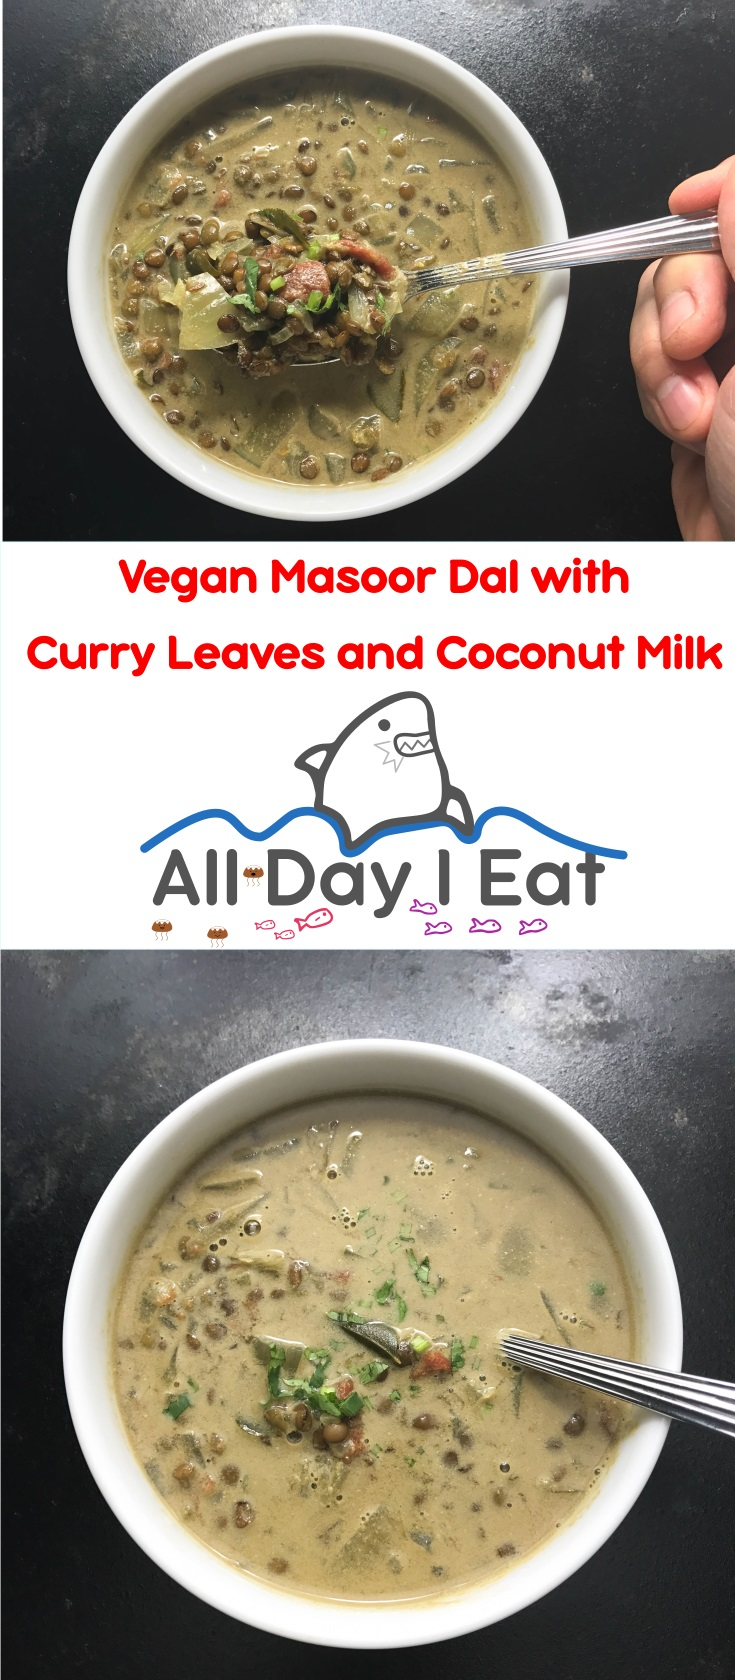 Vegan Masoor Dal with Curry Leaves and Coconut Milk. A rich and delicious way to get a taste of India in your diet | www.alldayieat.com